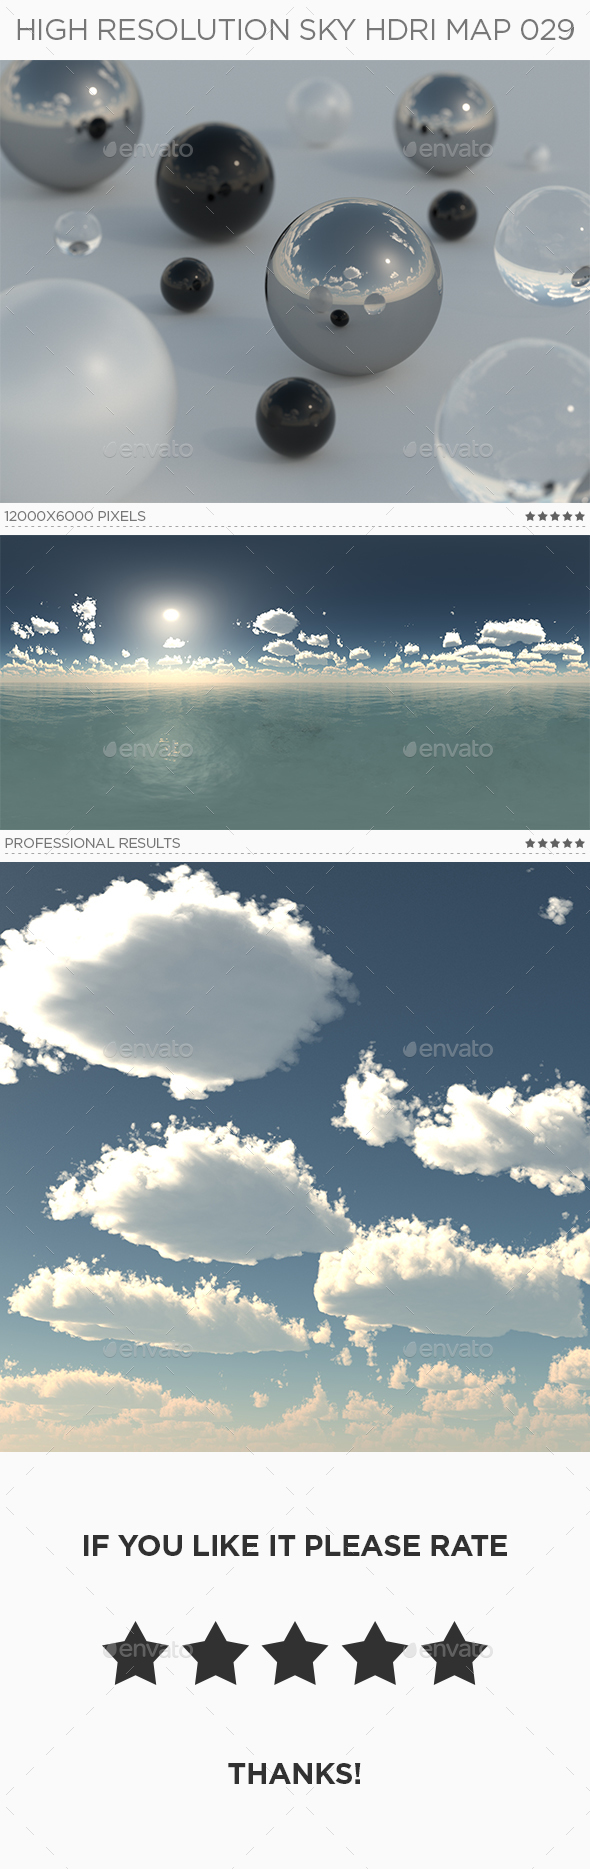 High Resolution Sky HDRi Map 029 - 3DOcean Item for Sale